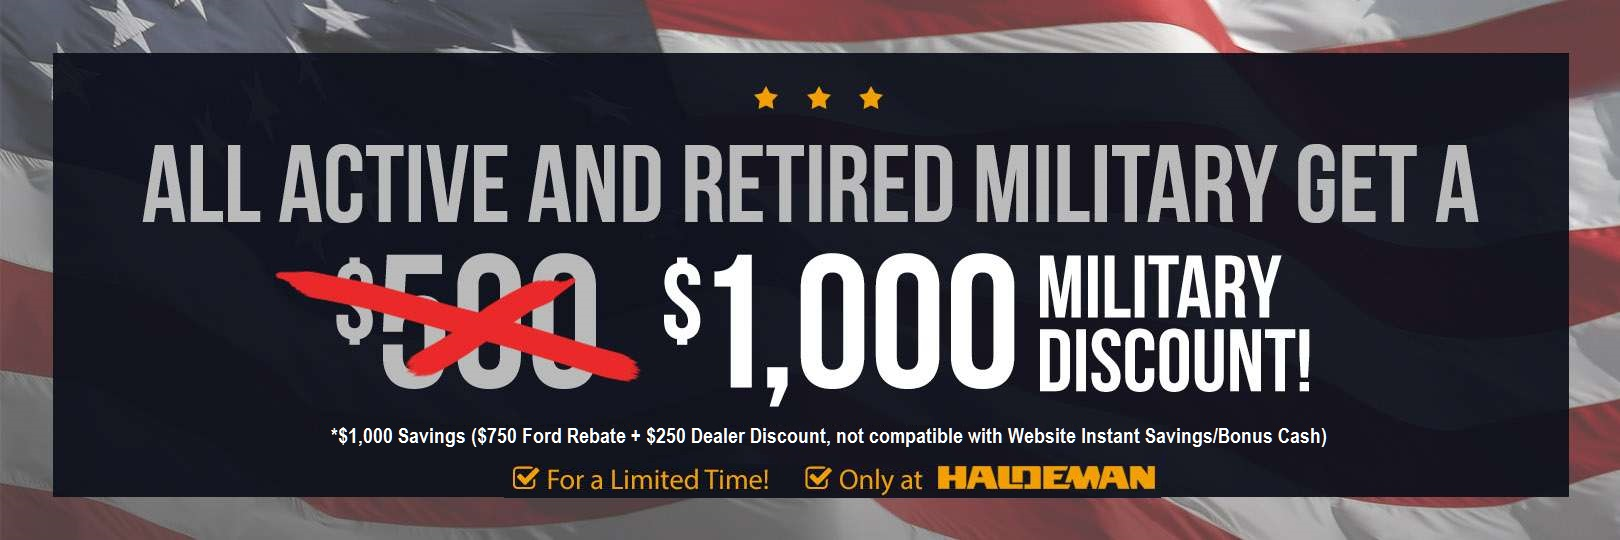 ford military rebate 1000 bonus cash. Cars Review. Best American Auto & Cars Review